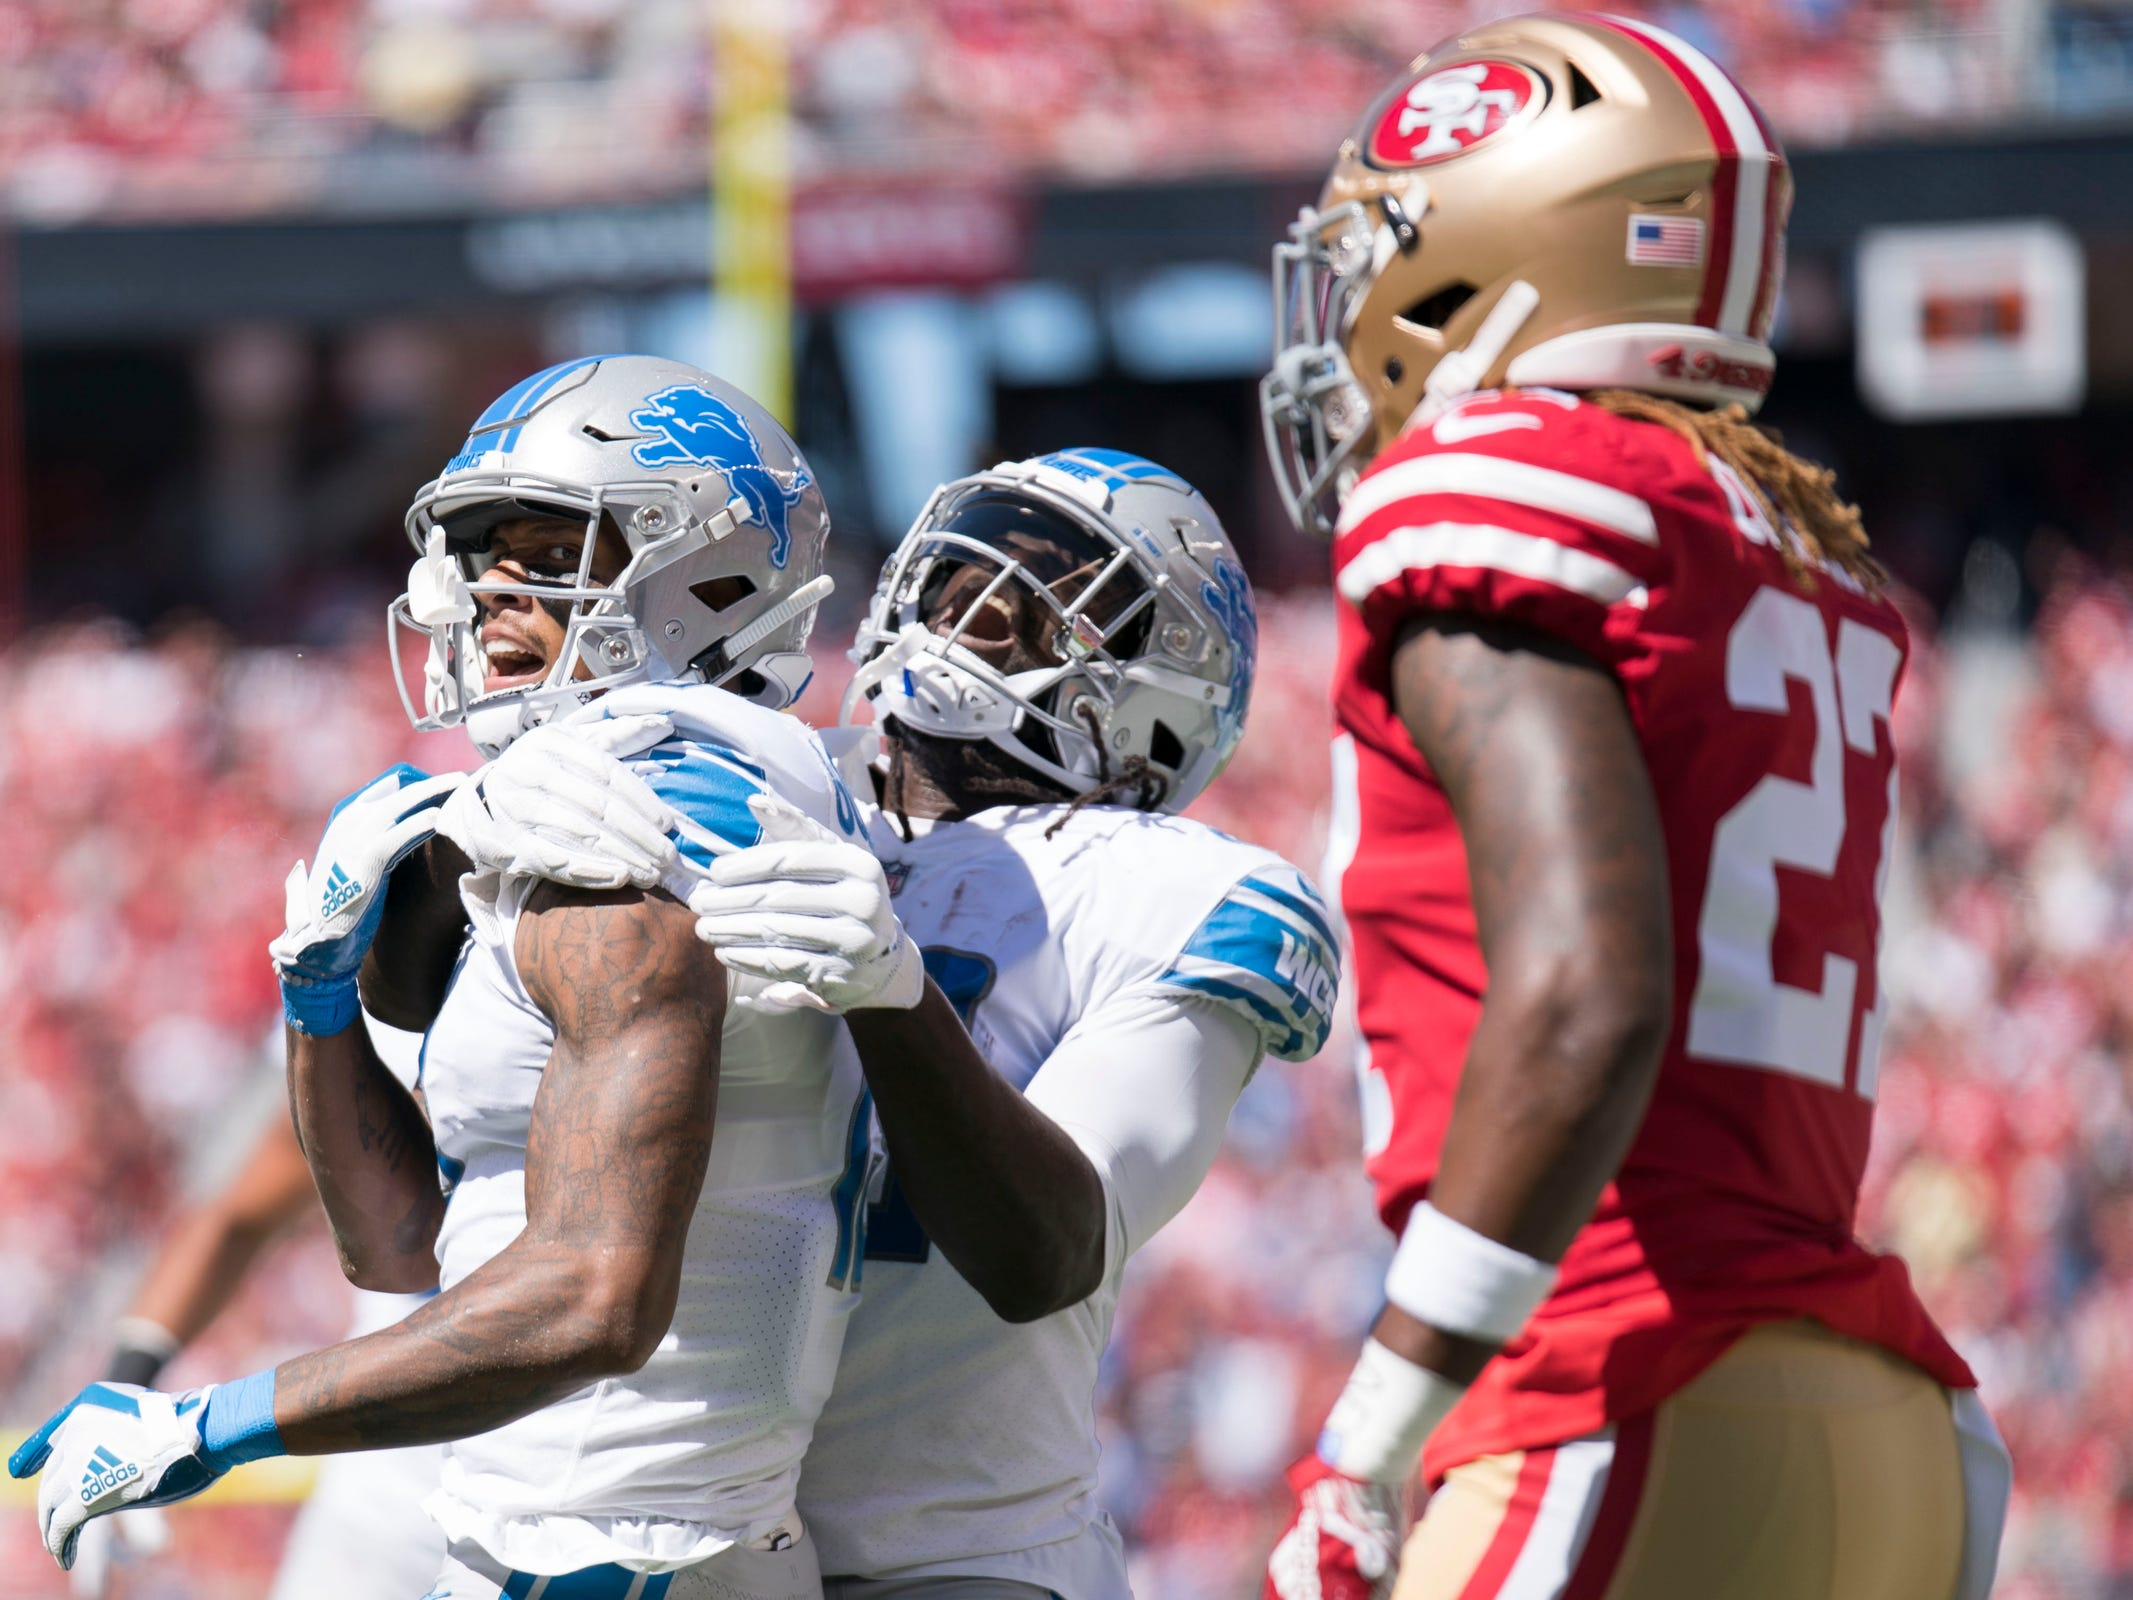 Lions wide receiver Kenny Golladay, left, is congratulated by running back LeGarrette Blount for scoring a touchdown as 49ers defensive back Adrian Colbert looks on during the first quarter on Sunday, Sept. 16, 2018, in Santa Clara, Calif.